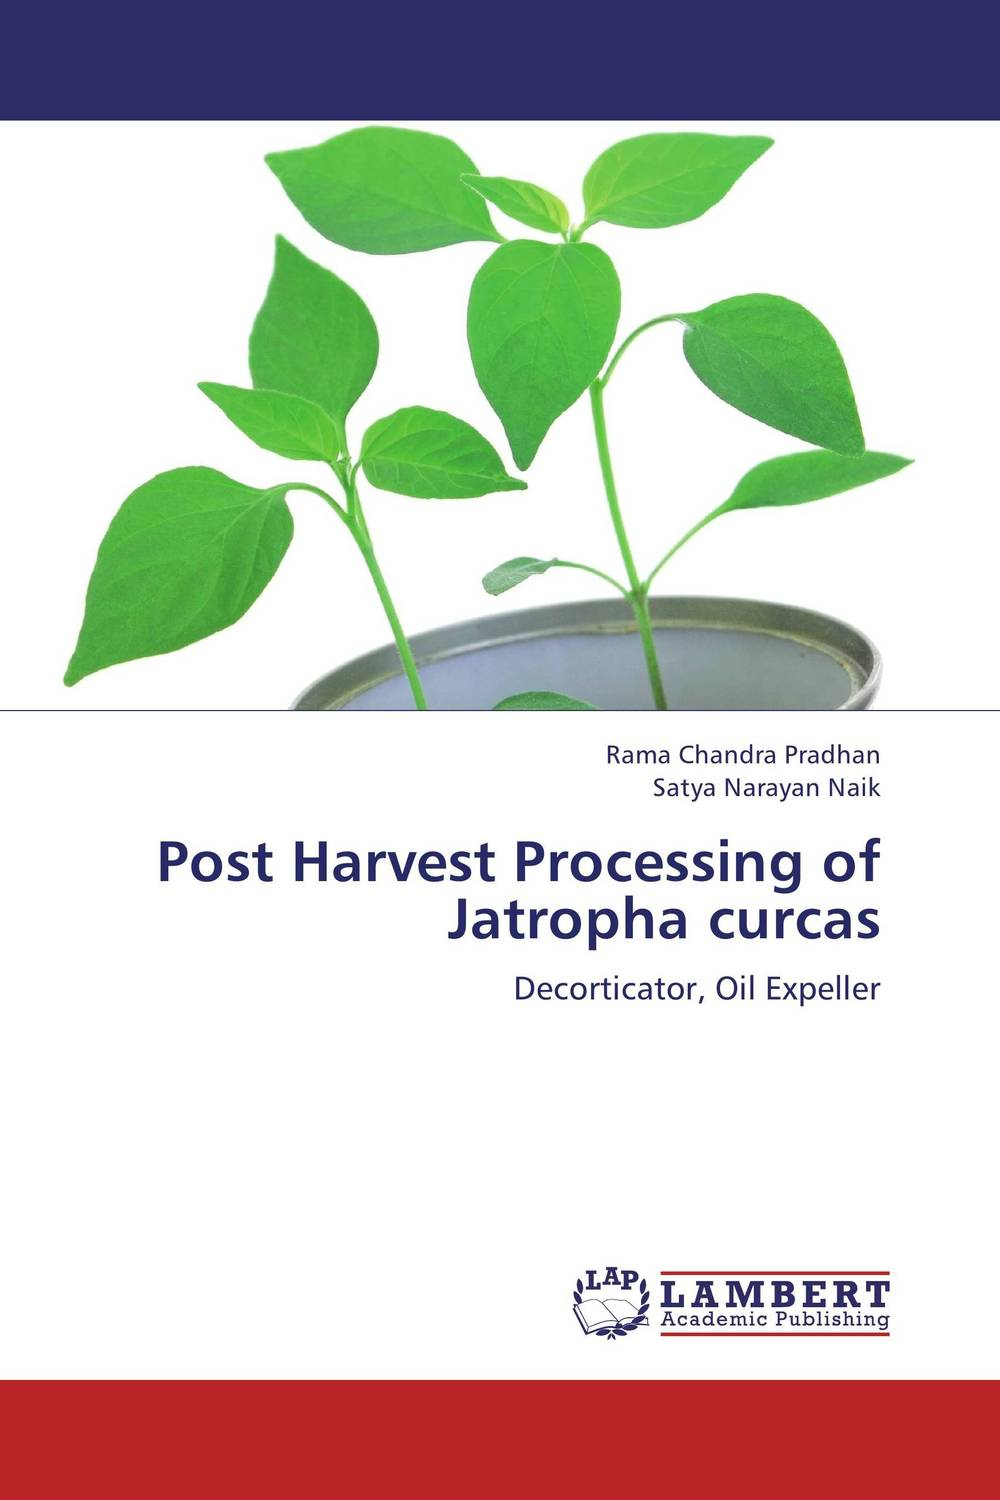 Post Harvest Processing of Jatropha curcas